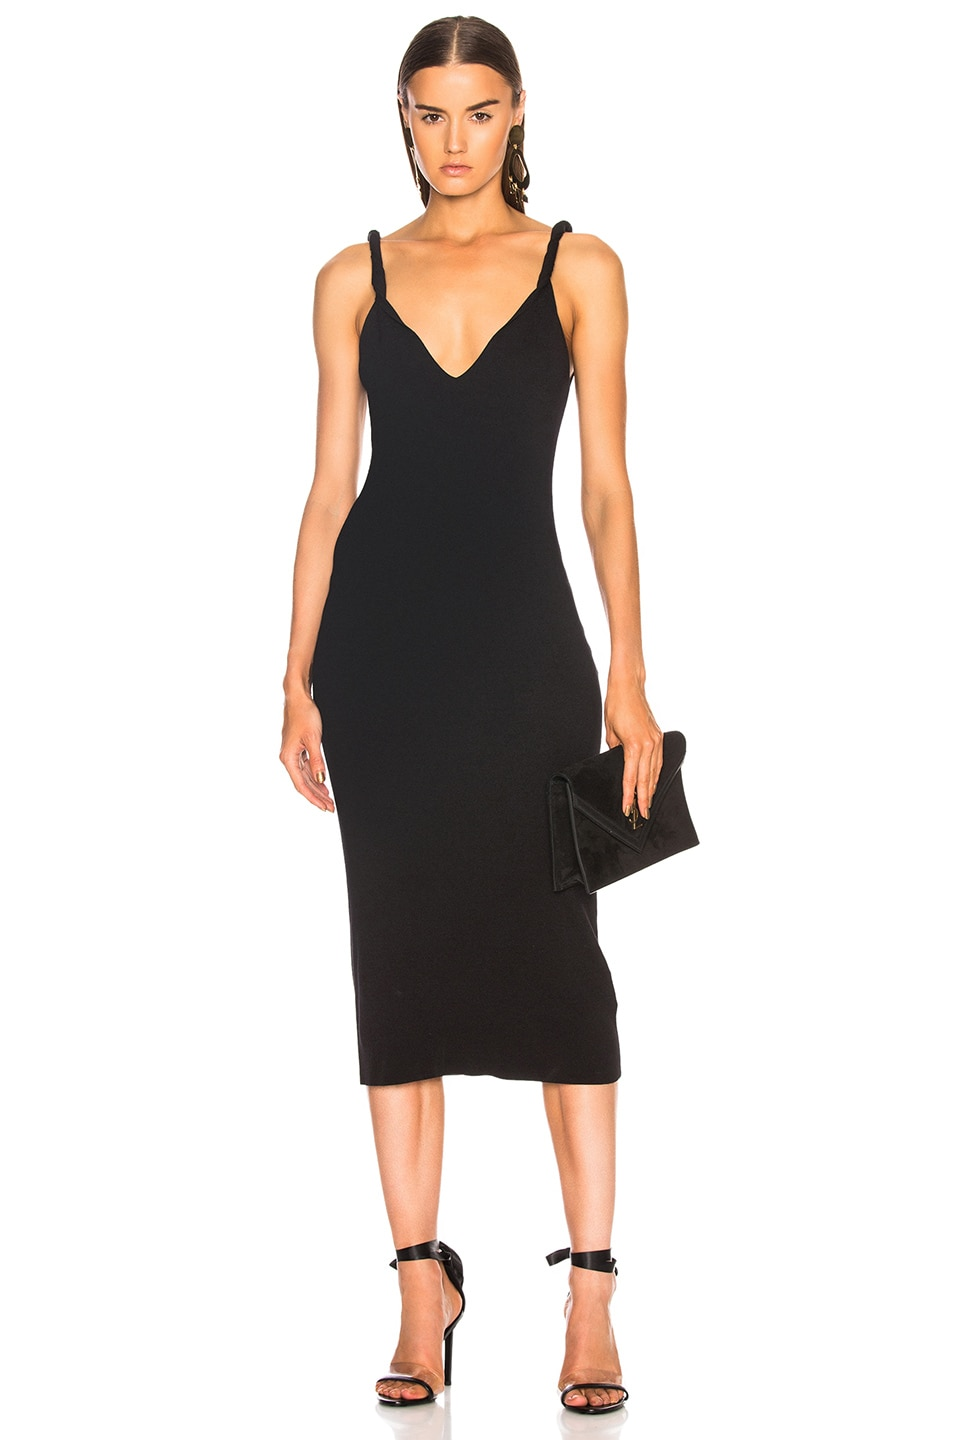 Clearance Outlet Store Twist Shoulder Dress in Black Dion Lee Clearance Cheap Sneakernews Sale Online Free Shipping Prices Deals Cheap Price HKx6pklW